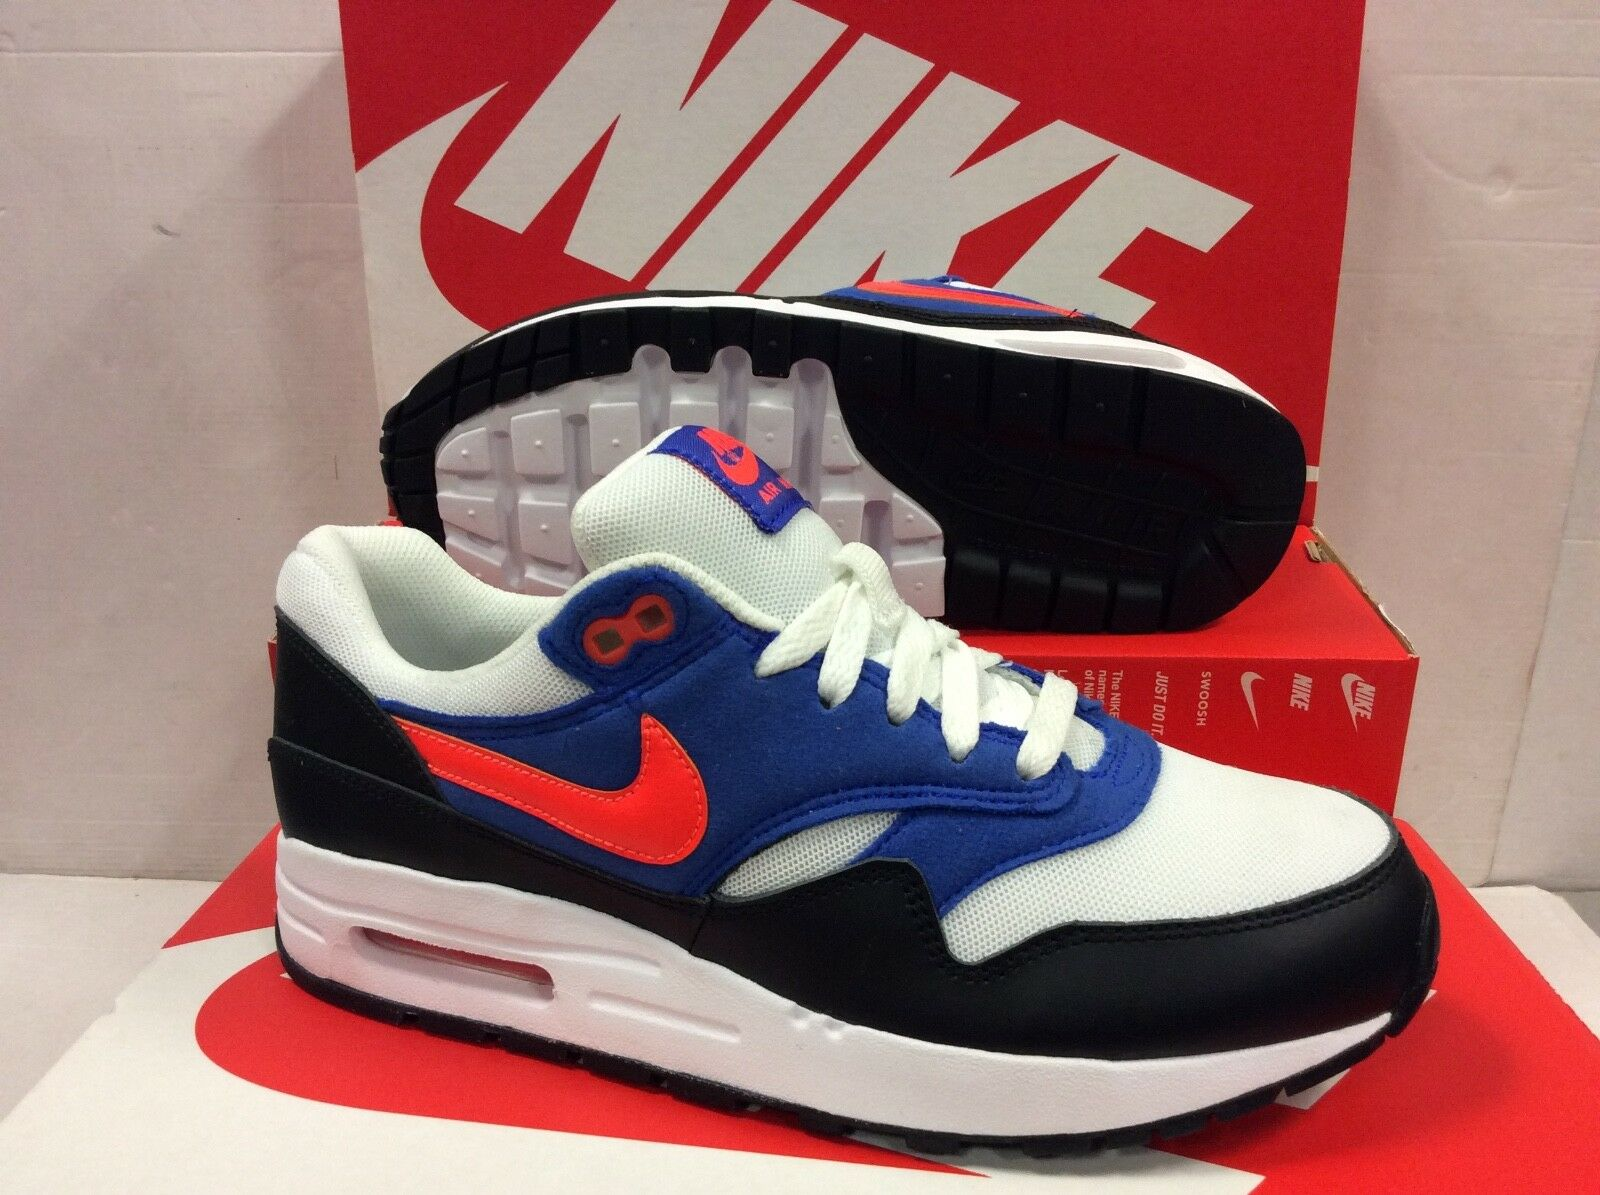 Nike Air Max 1 BG Unisex Juniors Trainers UK 5.5 EU 38.5